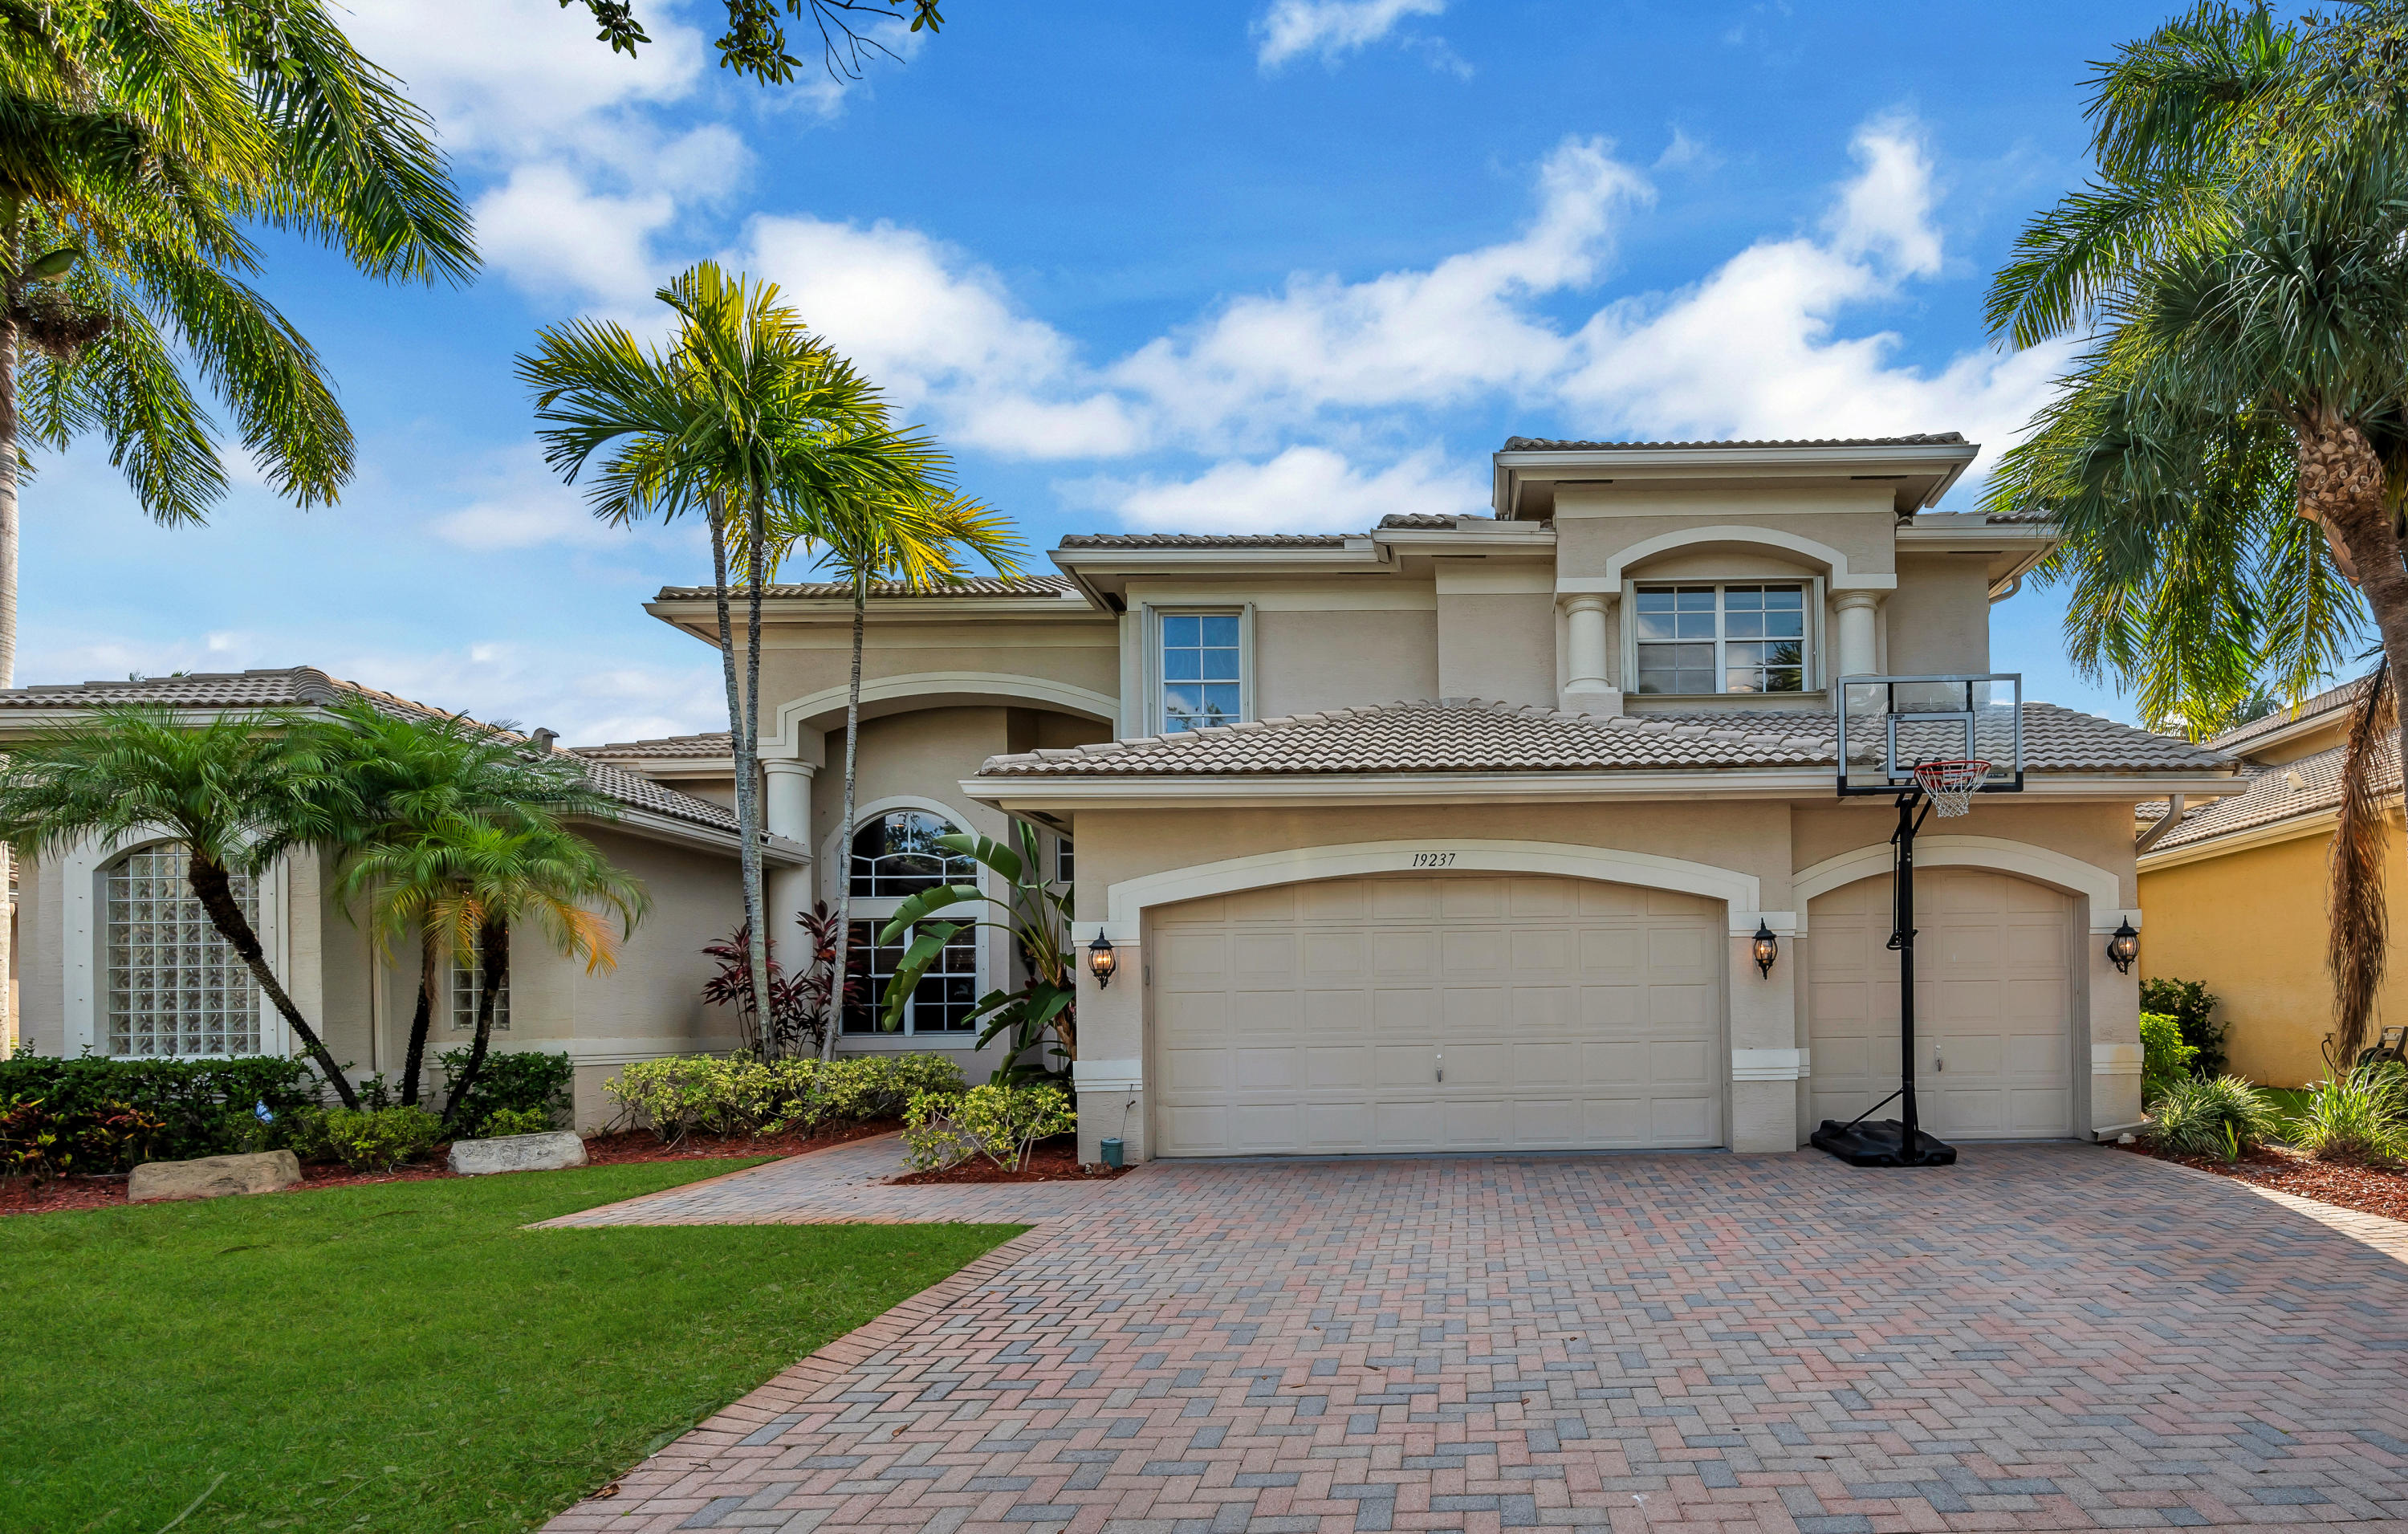 19237  Natures View Court  For Sale 10718947, FL